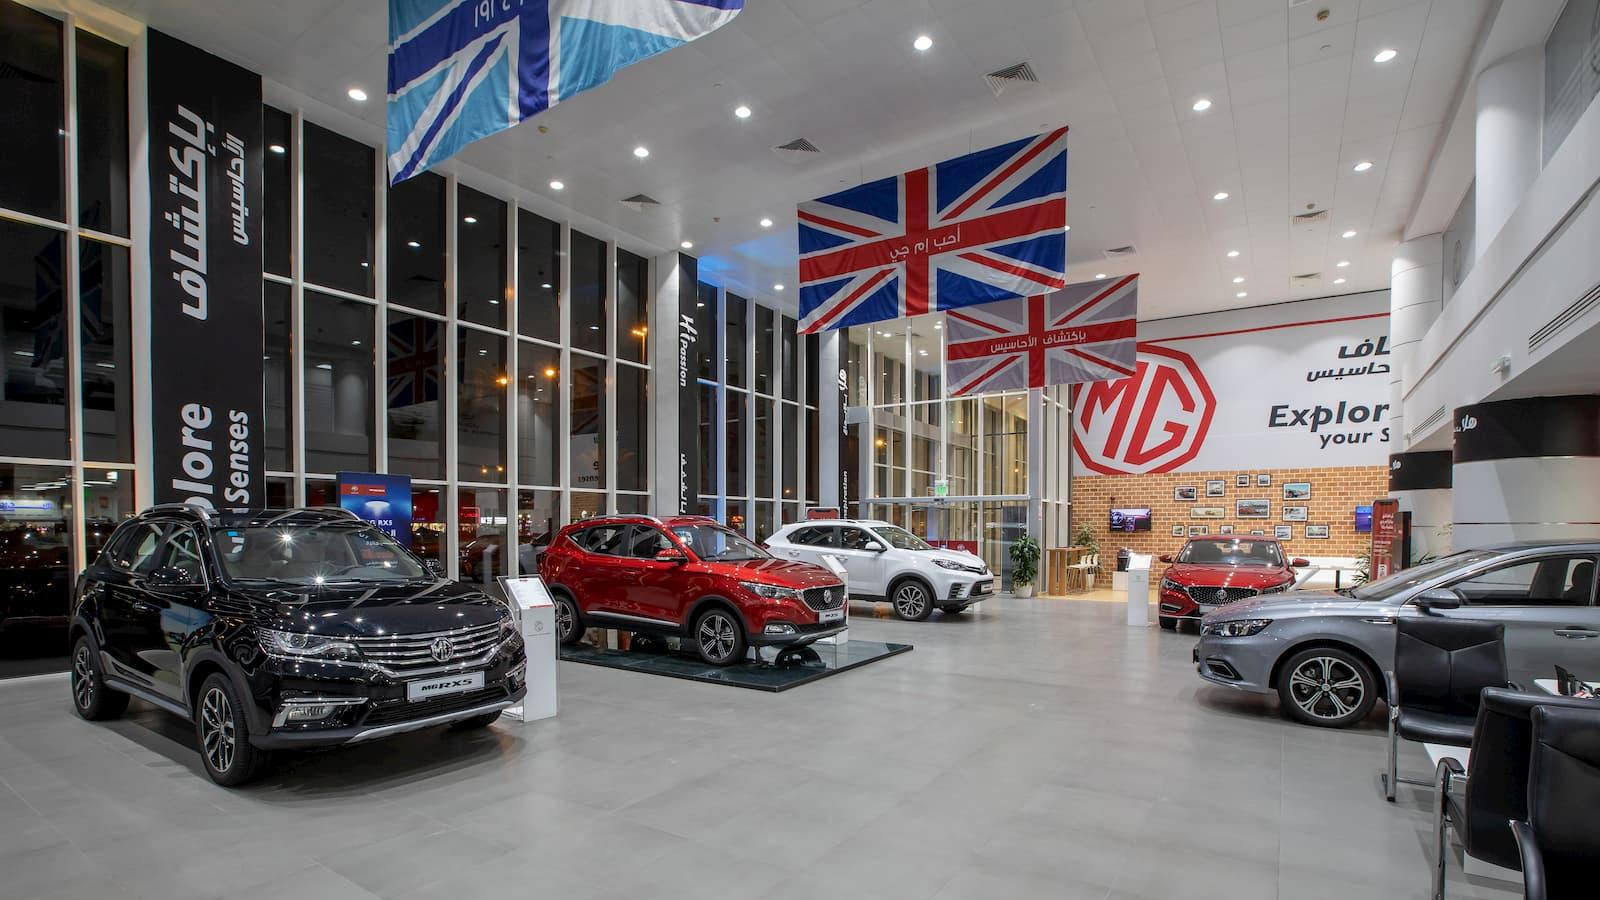 MG Motors launches all-new e-commerce platform to enhance customers' experience